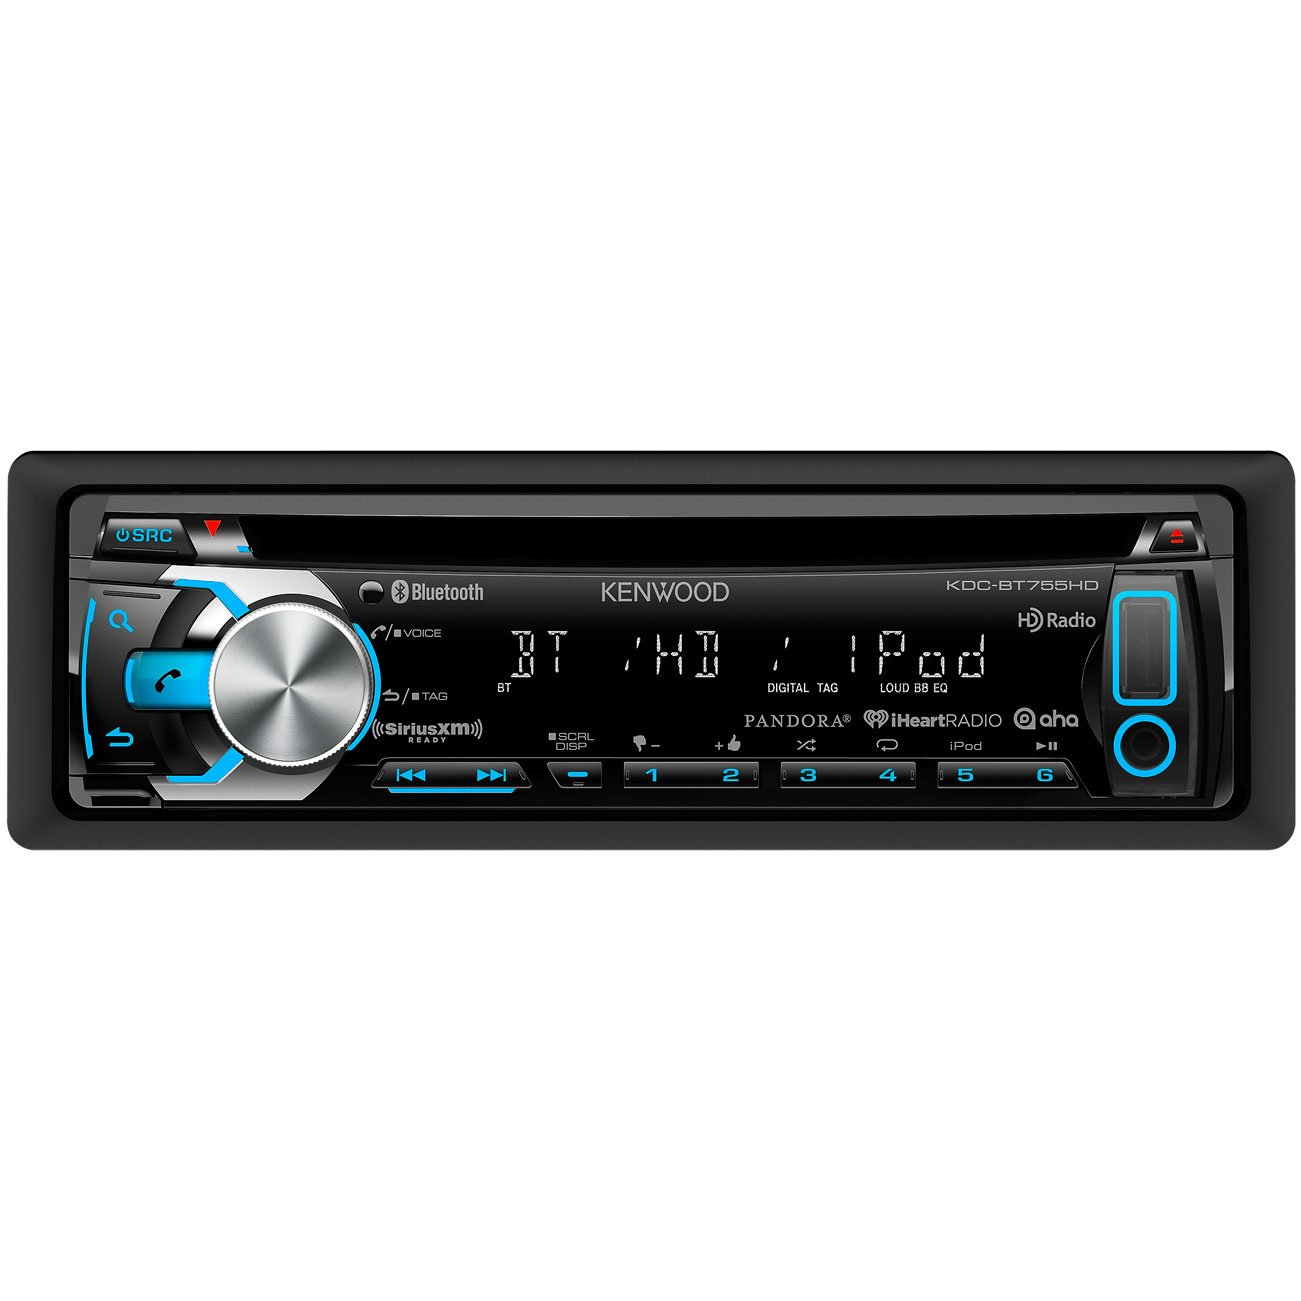 613EZhXKlLL._SL1301_ amazon com kenwood kdc bt755hd single din in dash cd siriusxm(tm kenwood kdc-bt758hd wiring diagram at aneh.co